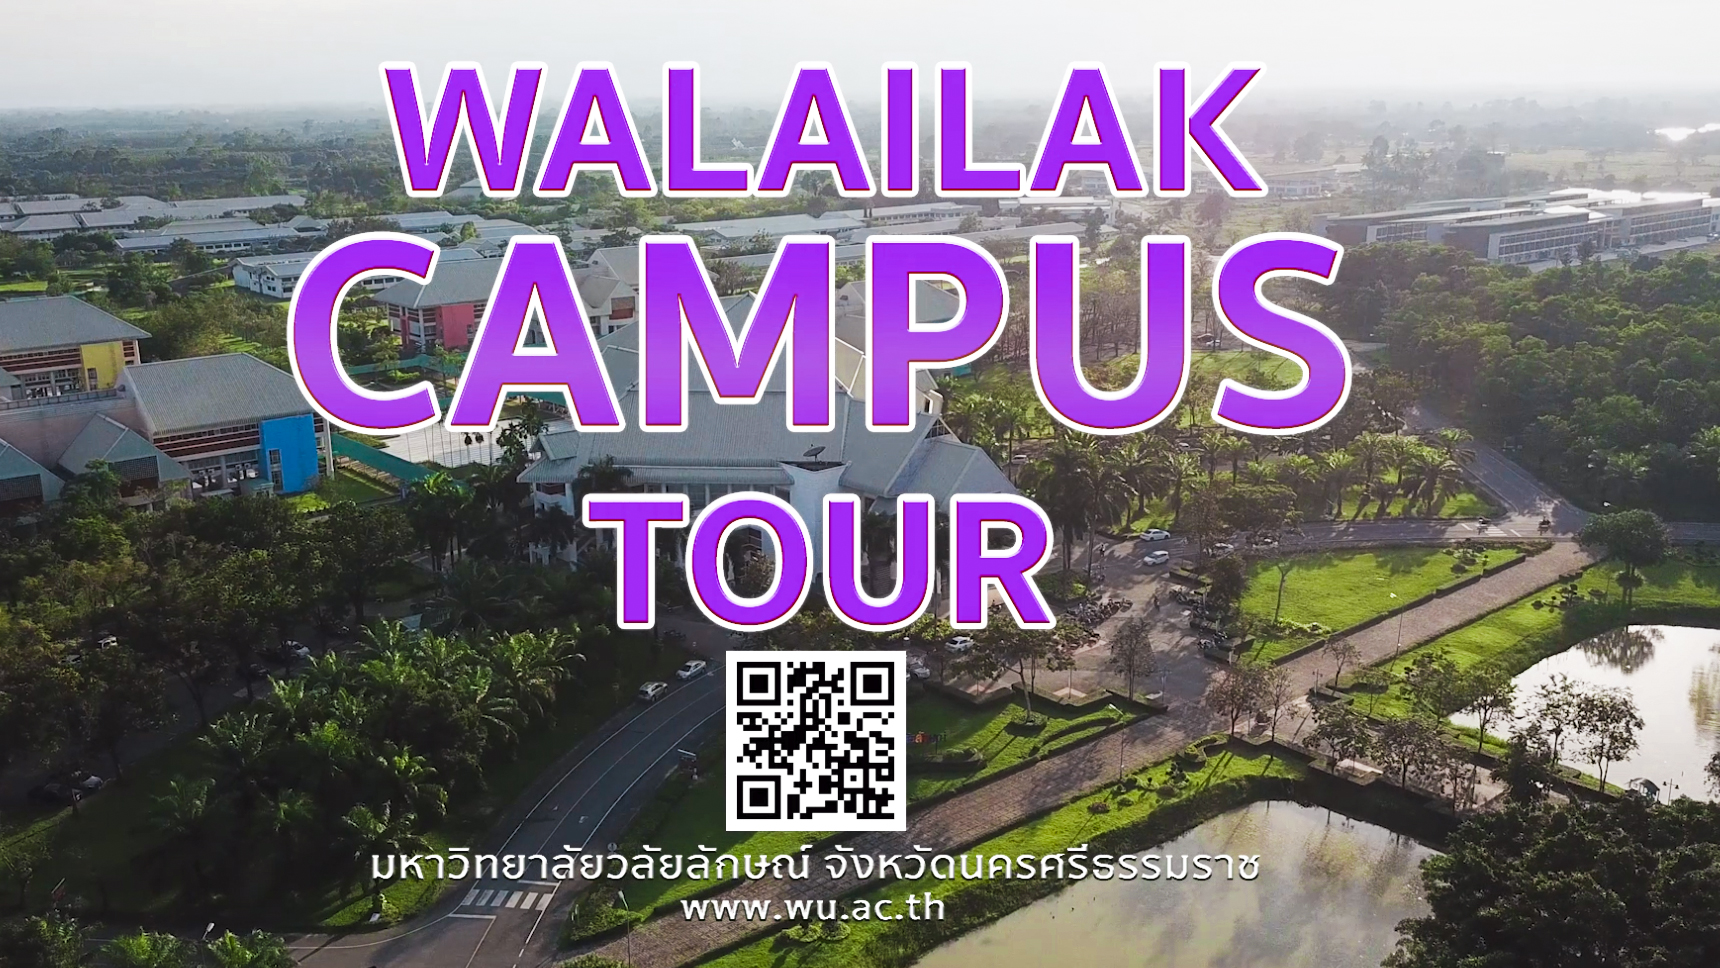 WALAILAK CAMPUS TOUR 2018 (Thai)